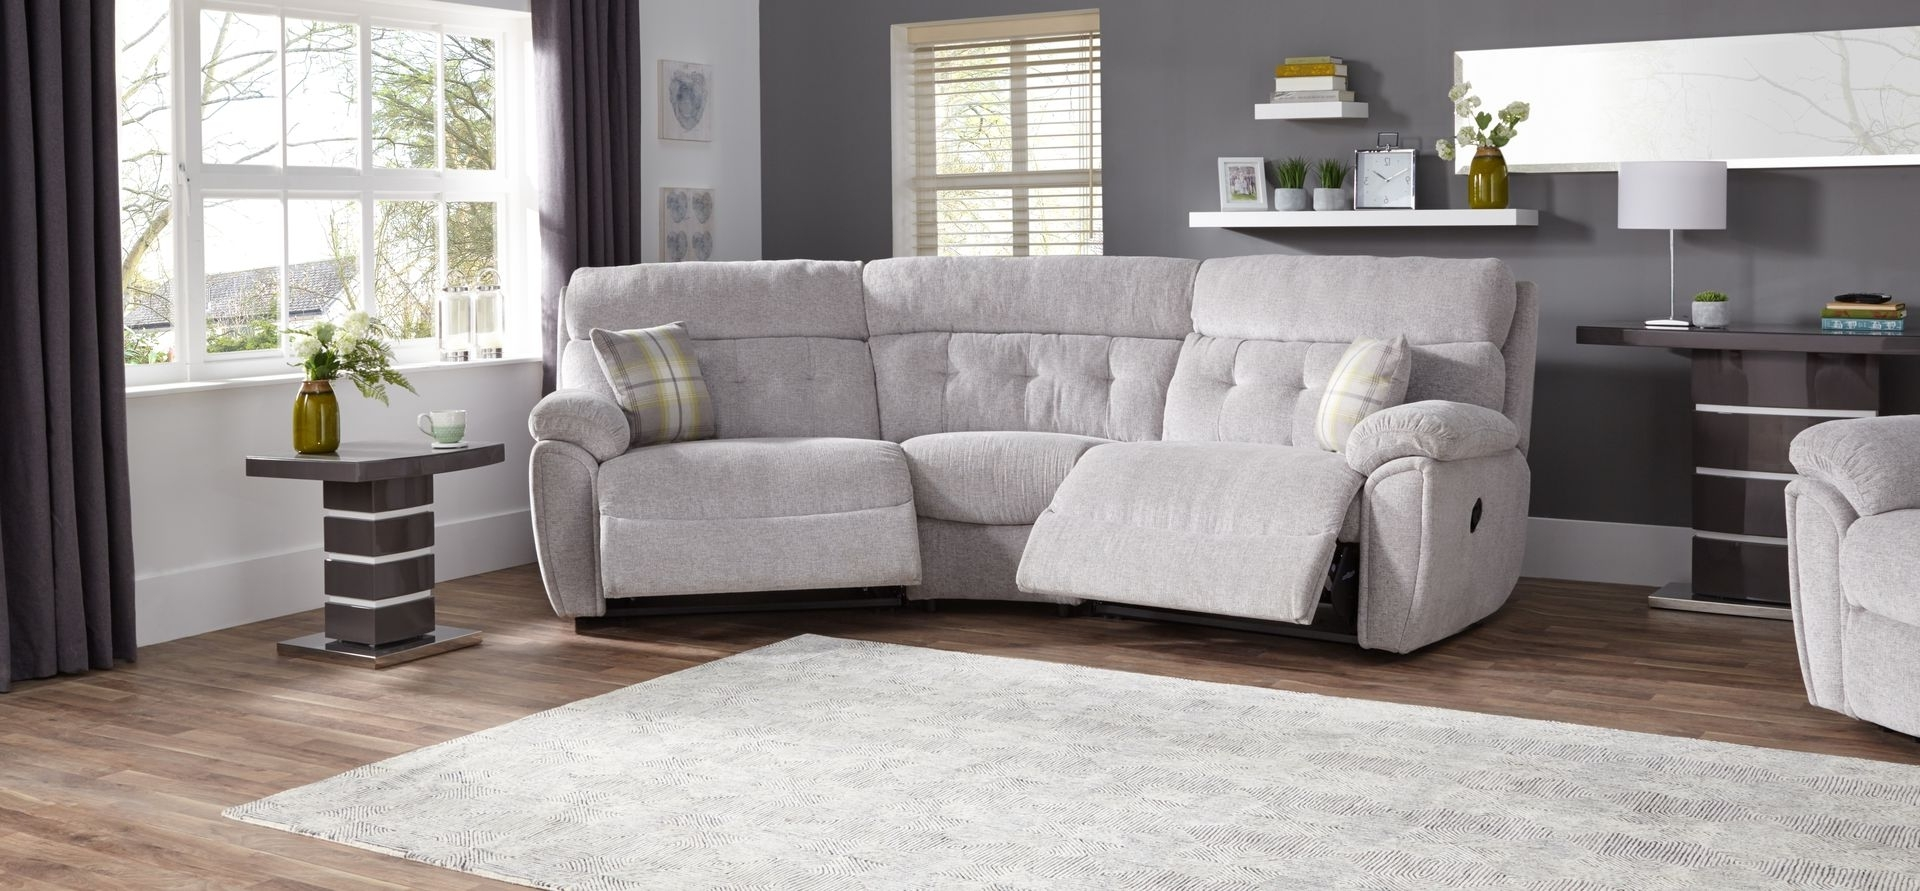 Destiny 4 Seater Curved Manual Recliner Sofa – Scs With Regard To Newest Curved Recliner Sofas (Gallery 14 of 20)